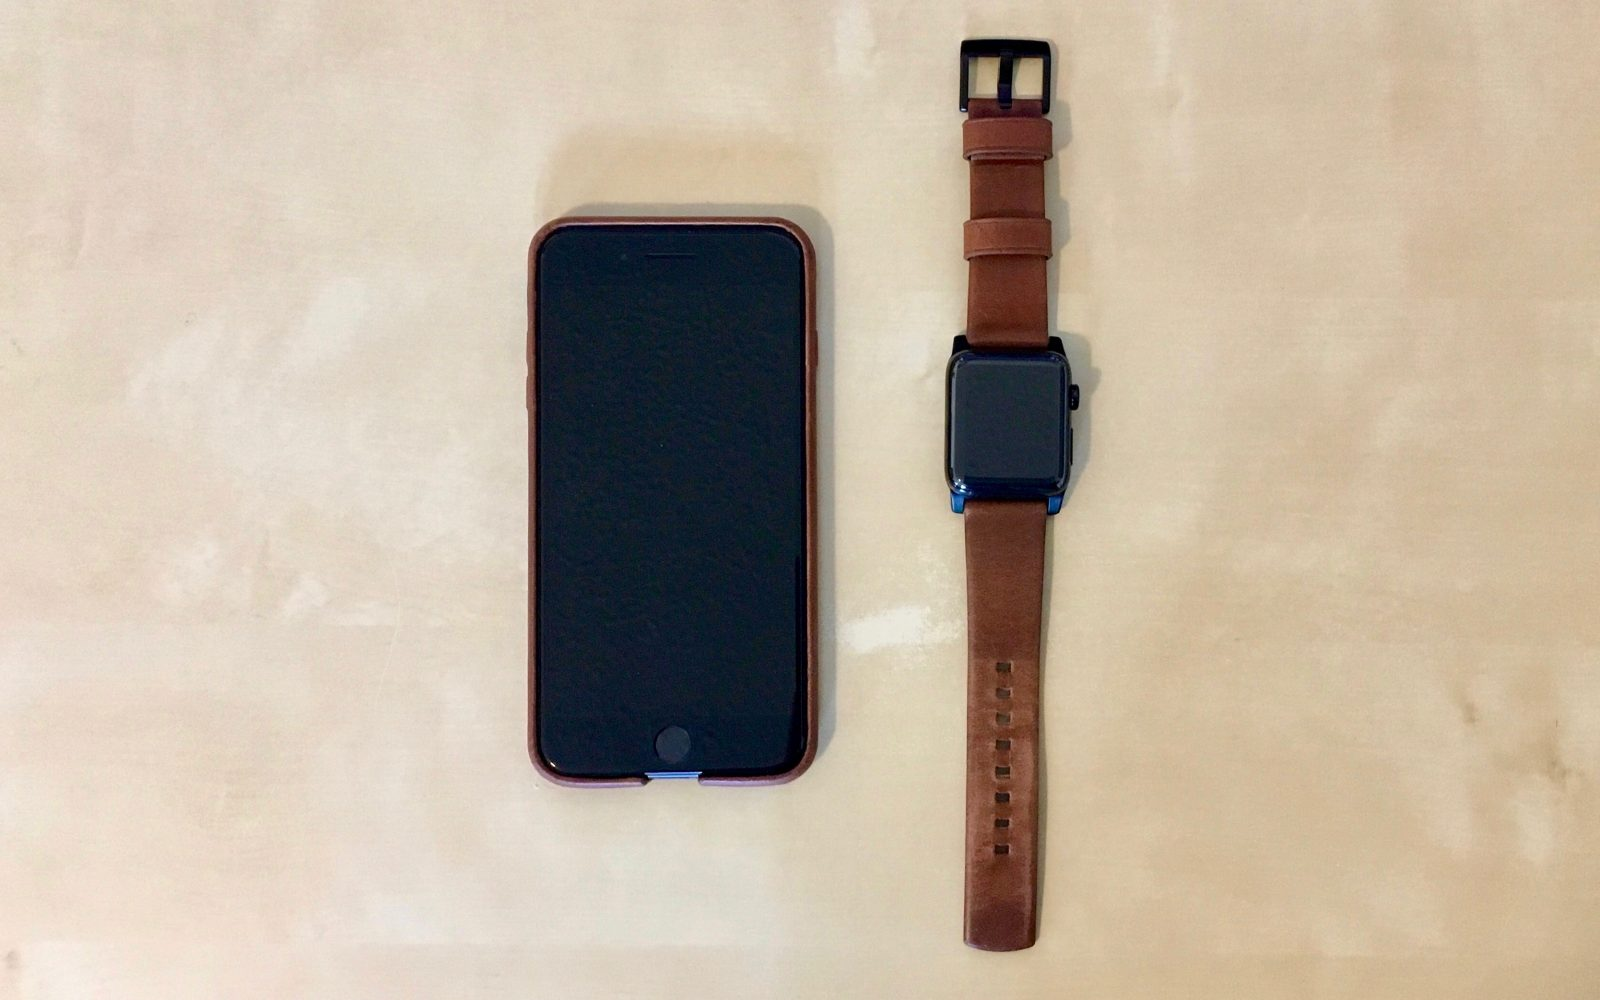 info for 67216 a367d Review: Nomad Horween Leather iPhone 7 Plus Case + Apple Watch Strap ...